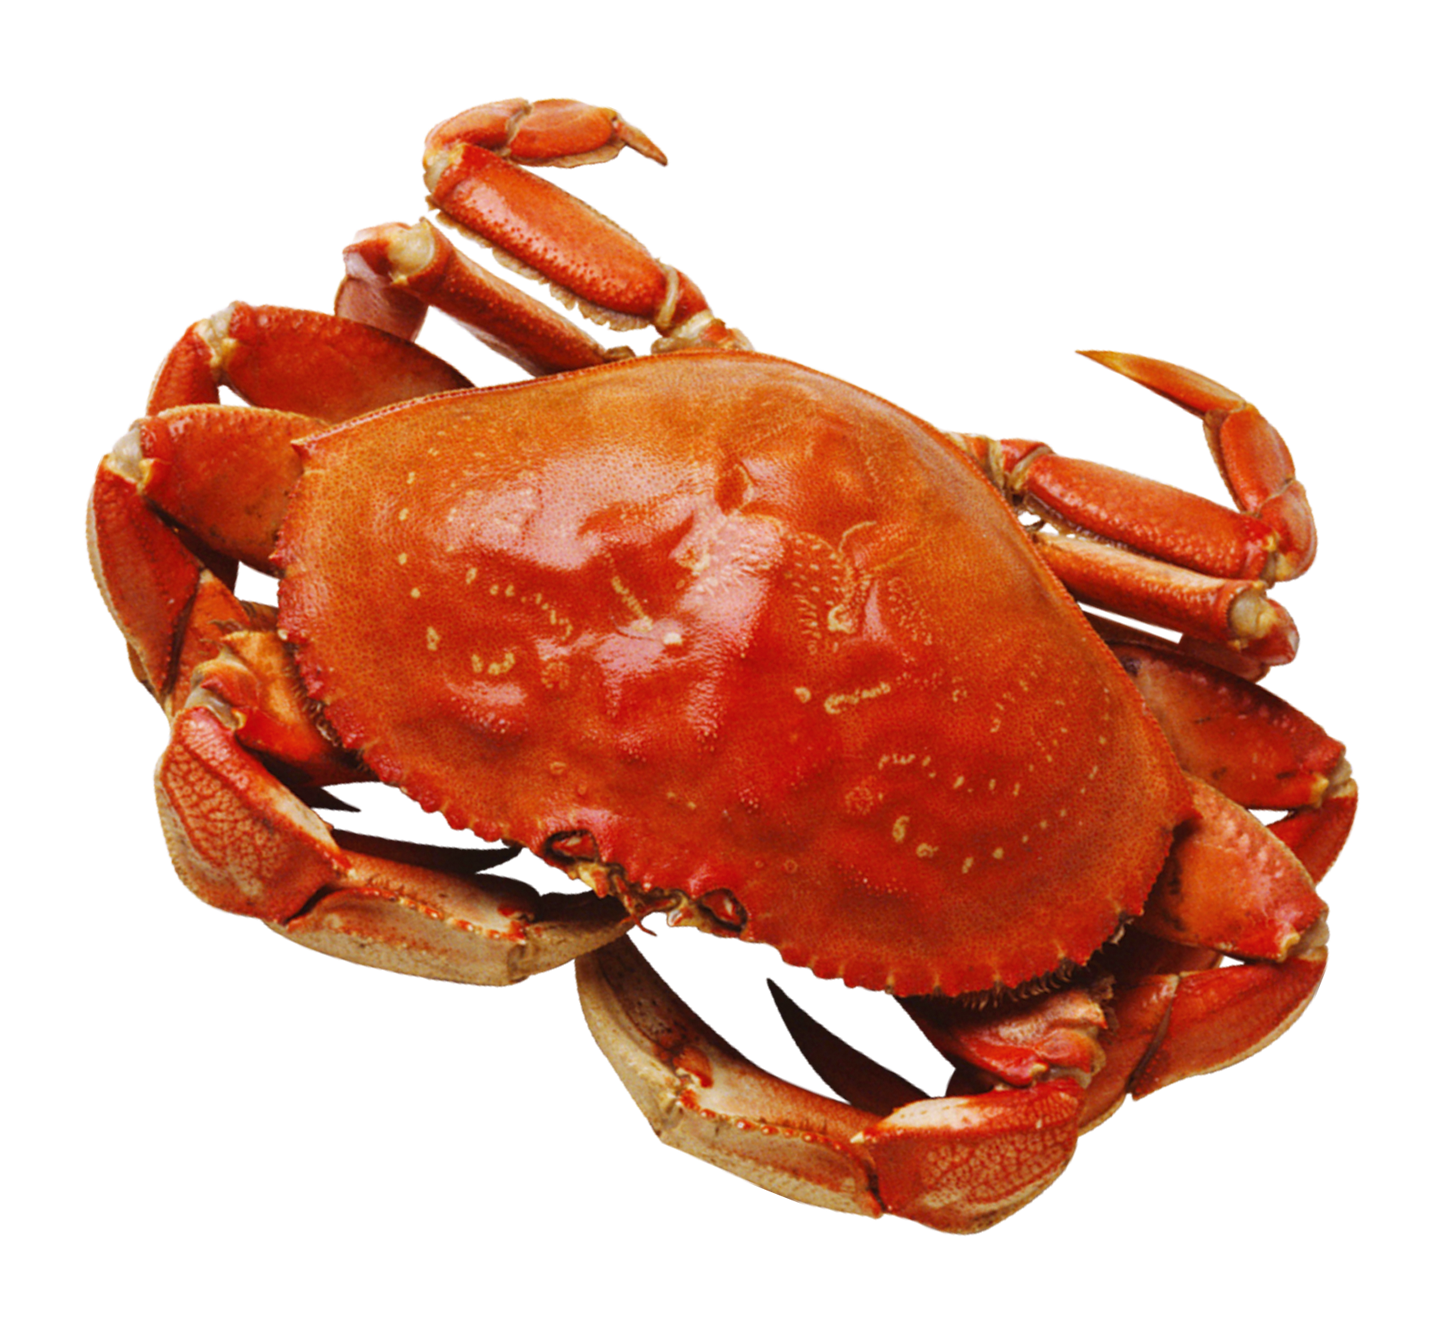 crab Remove your crab from the pot, and rinse under cool water in the sink this will stop the cooking process, cool down the shell enough for you to handle, and rinse off any icky crab guts that may have oozed out during cooking.